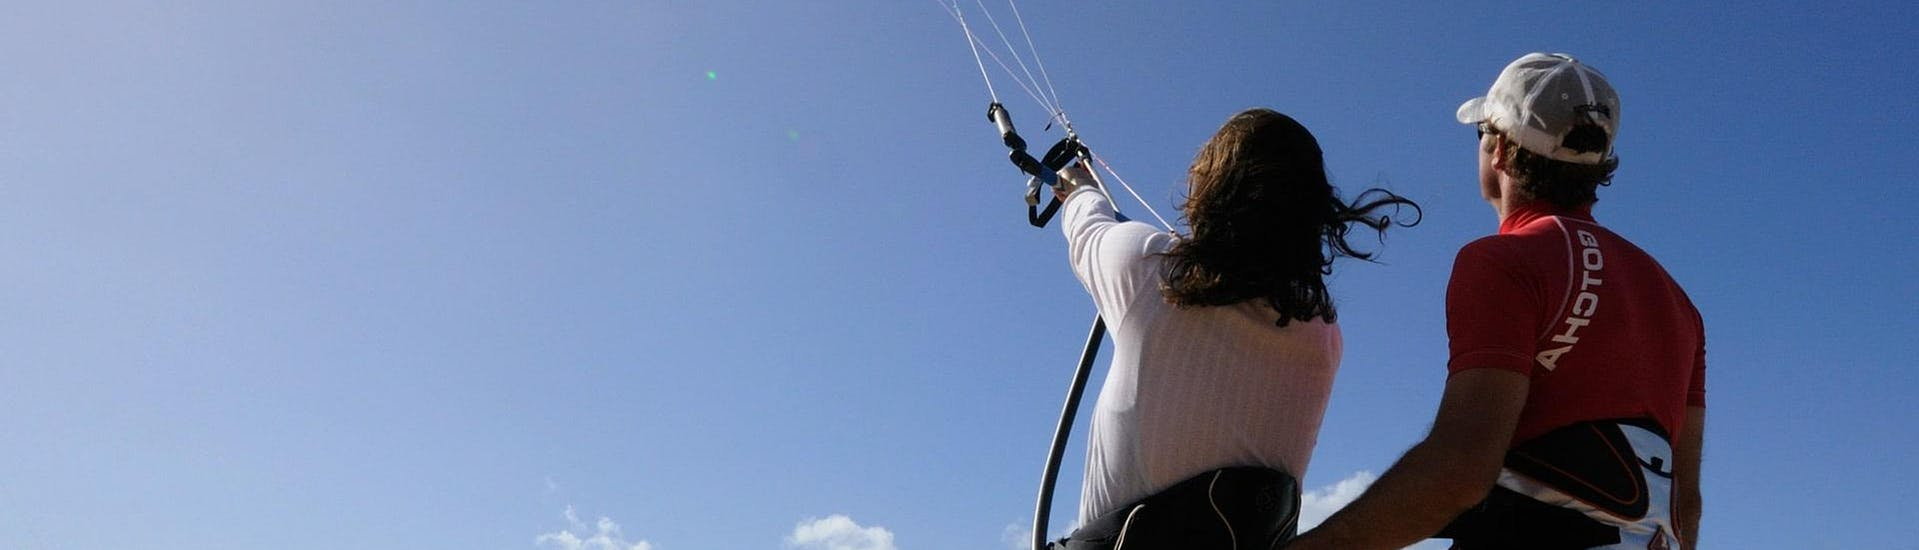 Kitesurfing Course from 12 Years - Beginners